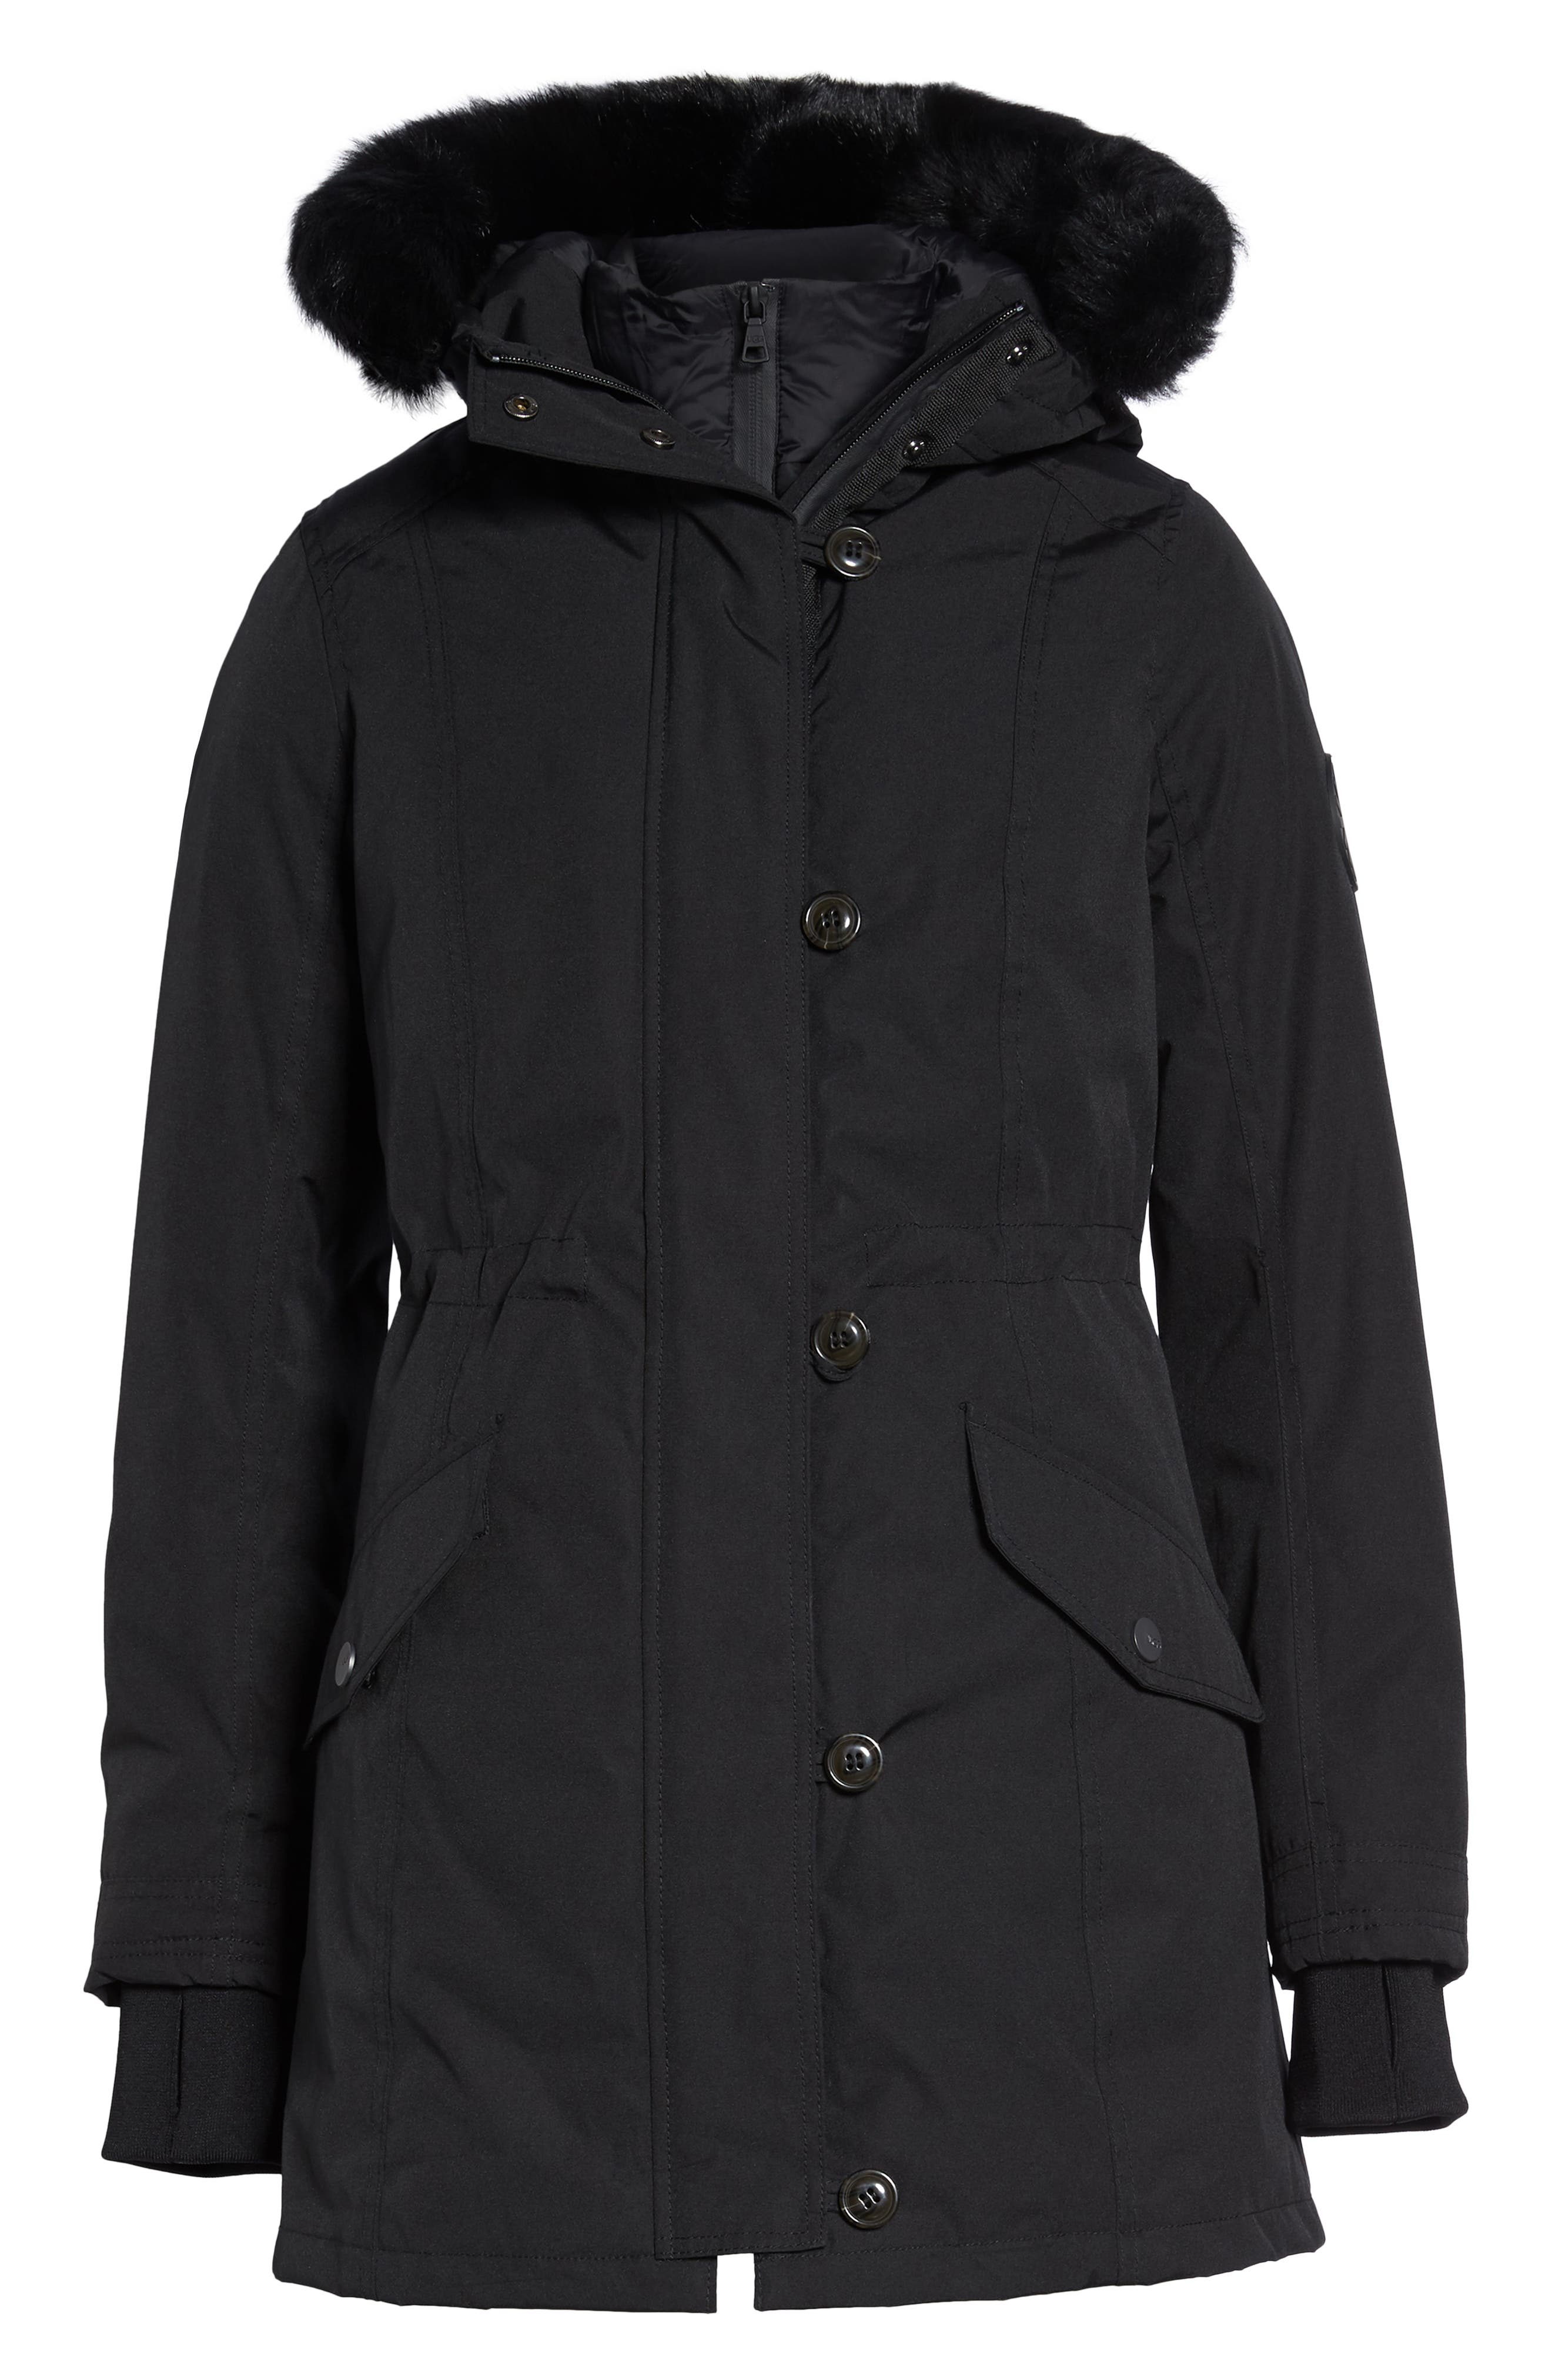 Adirondack Down Parka,                             Alternate thumbnail 7, color,                             BLACK